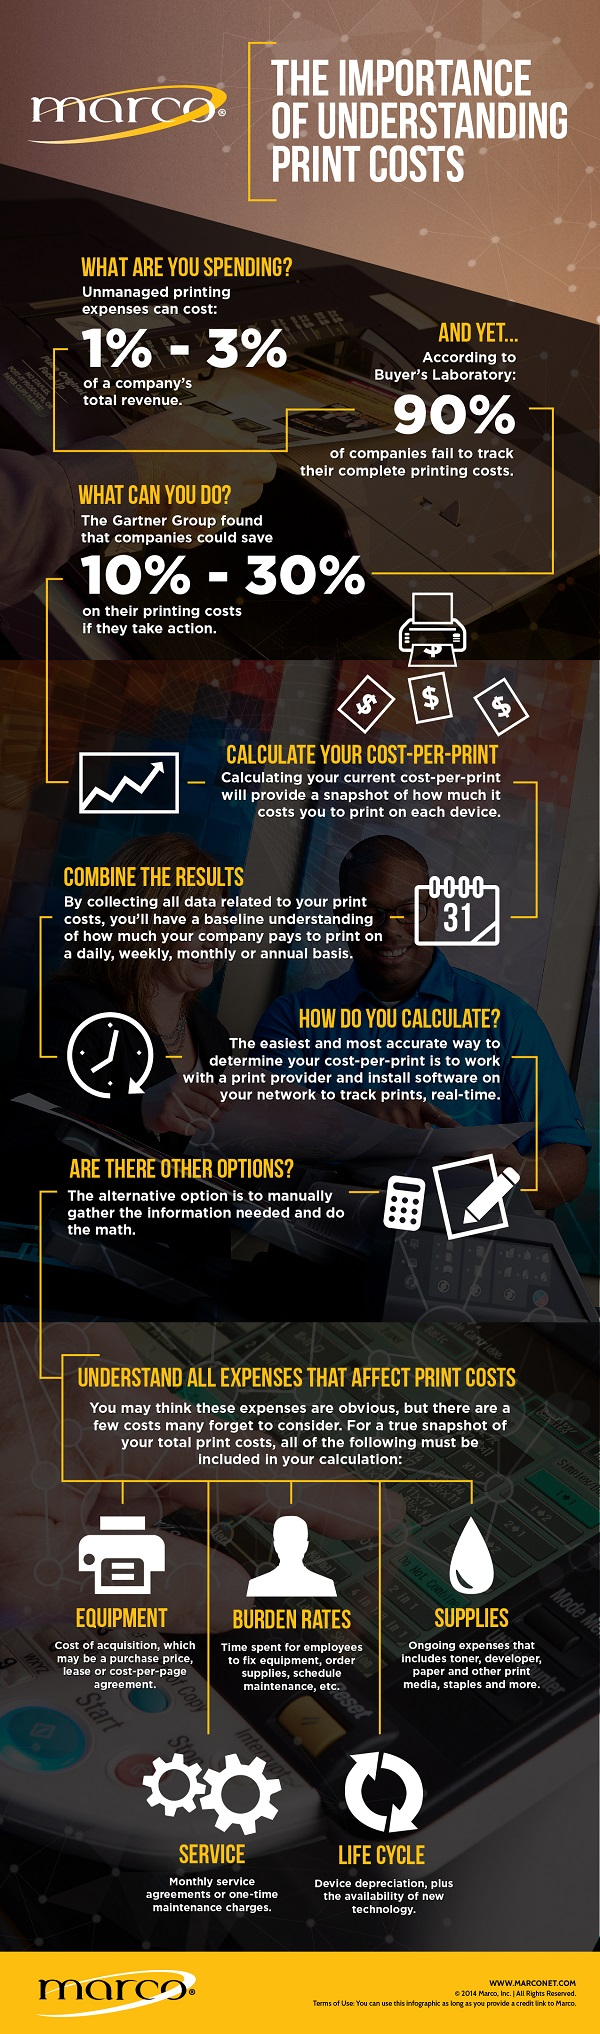 How to Calculate Cost-Per-Print and Reduce Printing Costs for Your